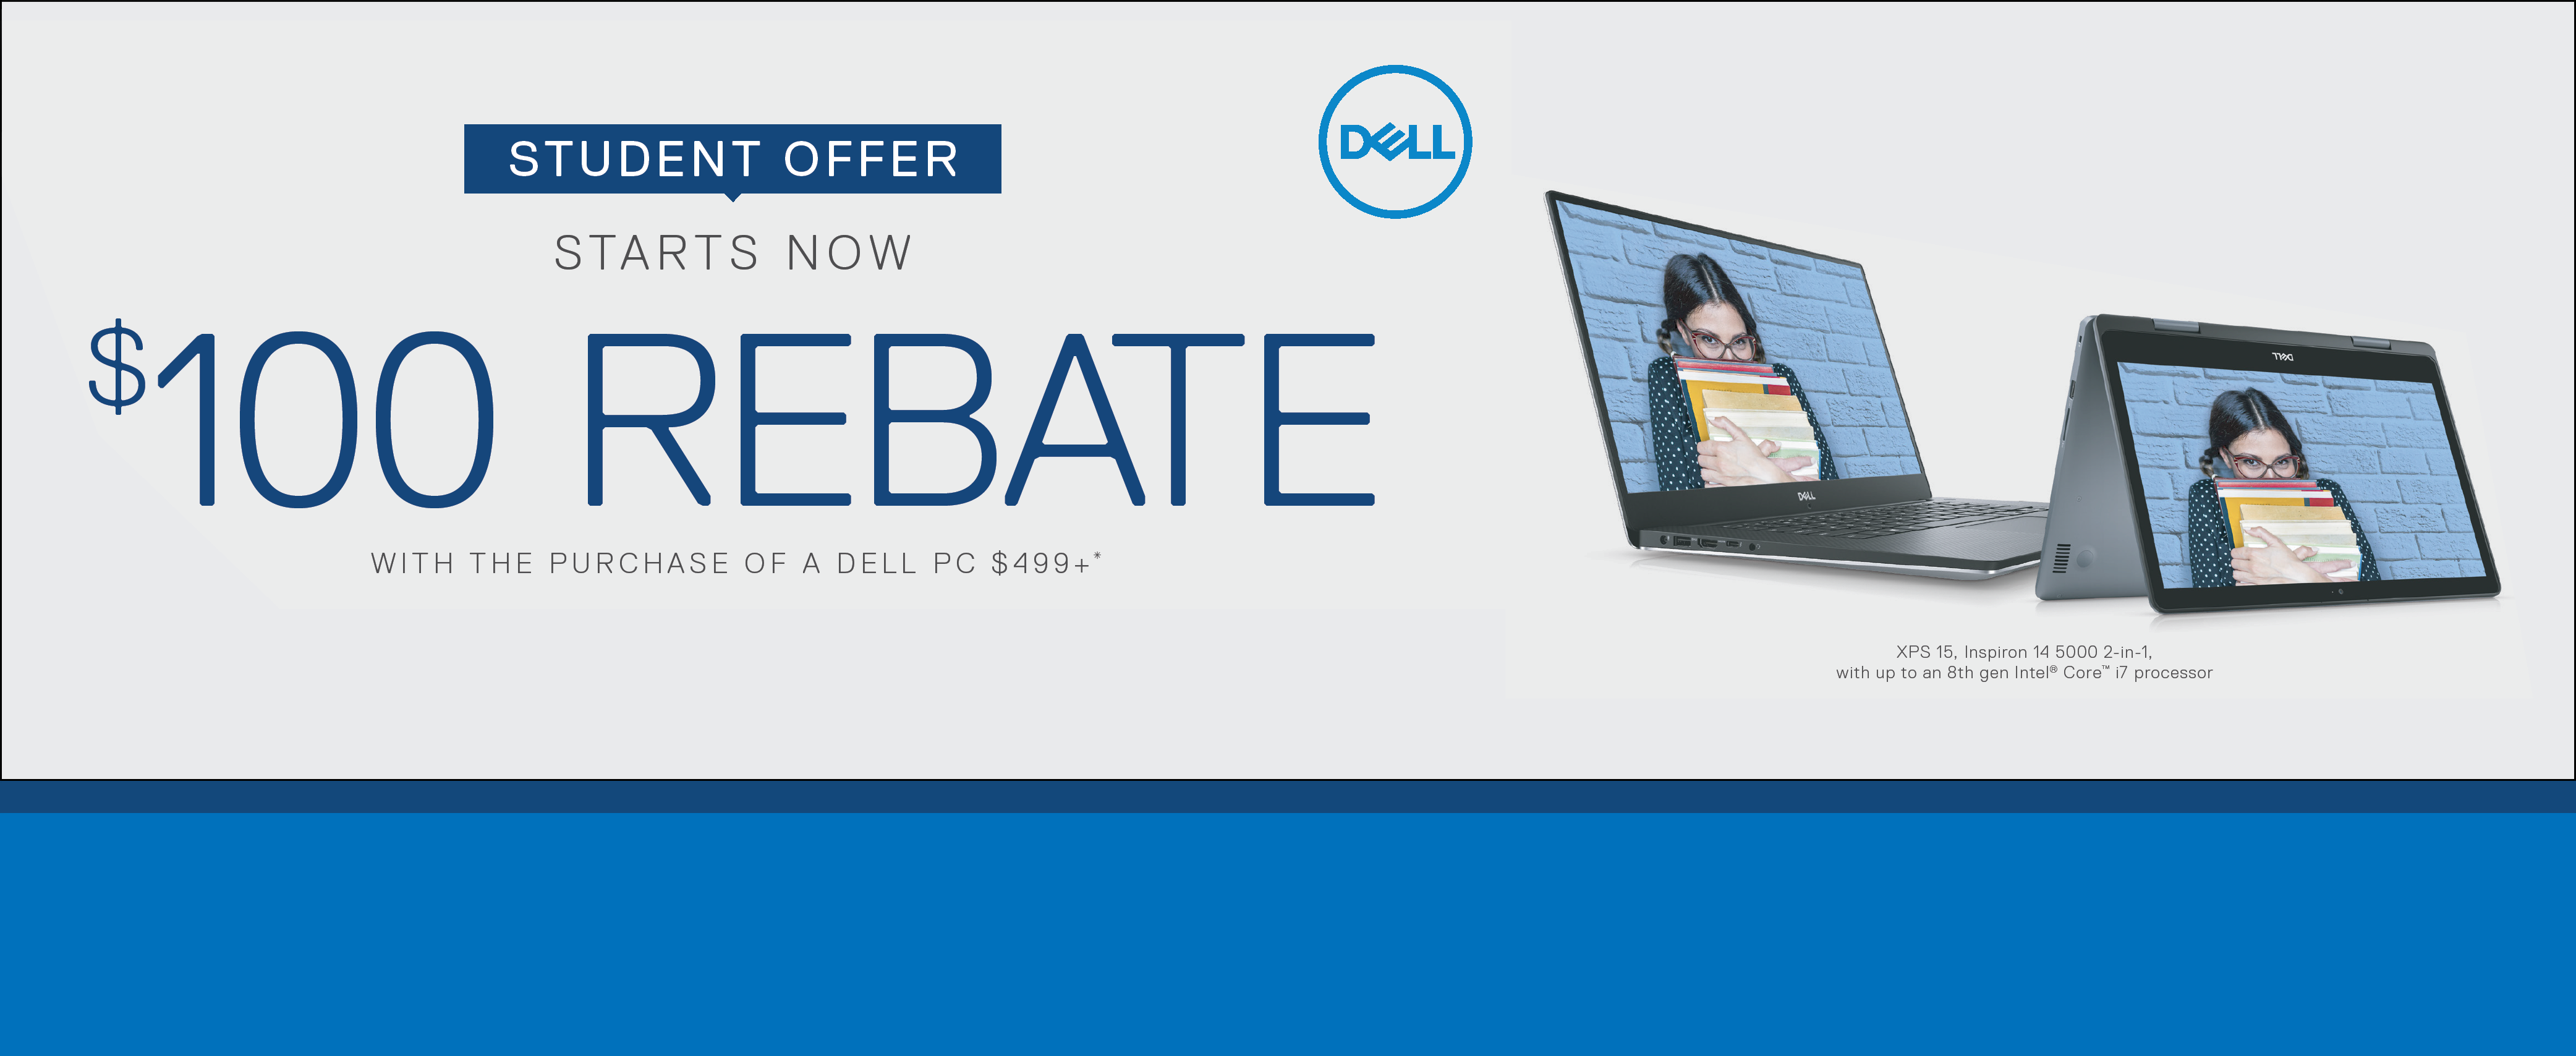 Dell Student Offer